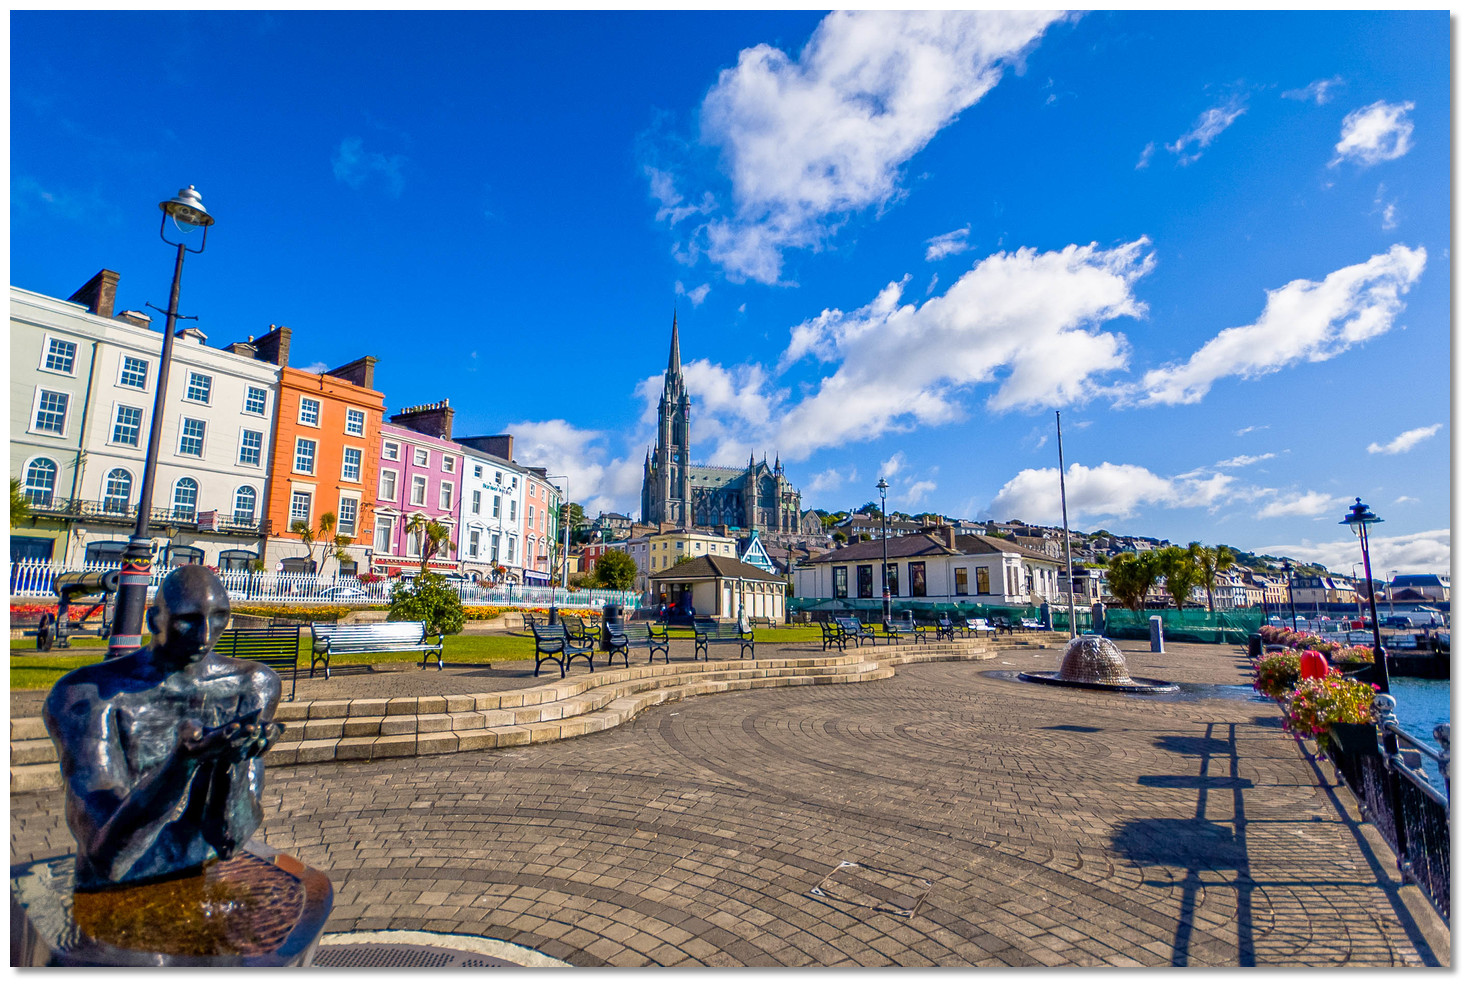 Attractions in Cobh - Attractions - Cobh Heritage Centre